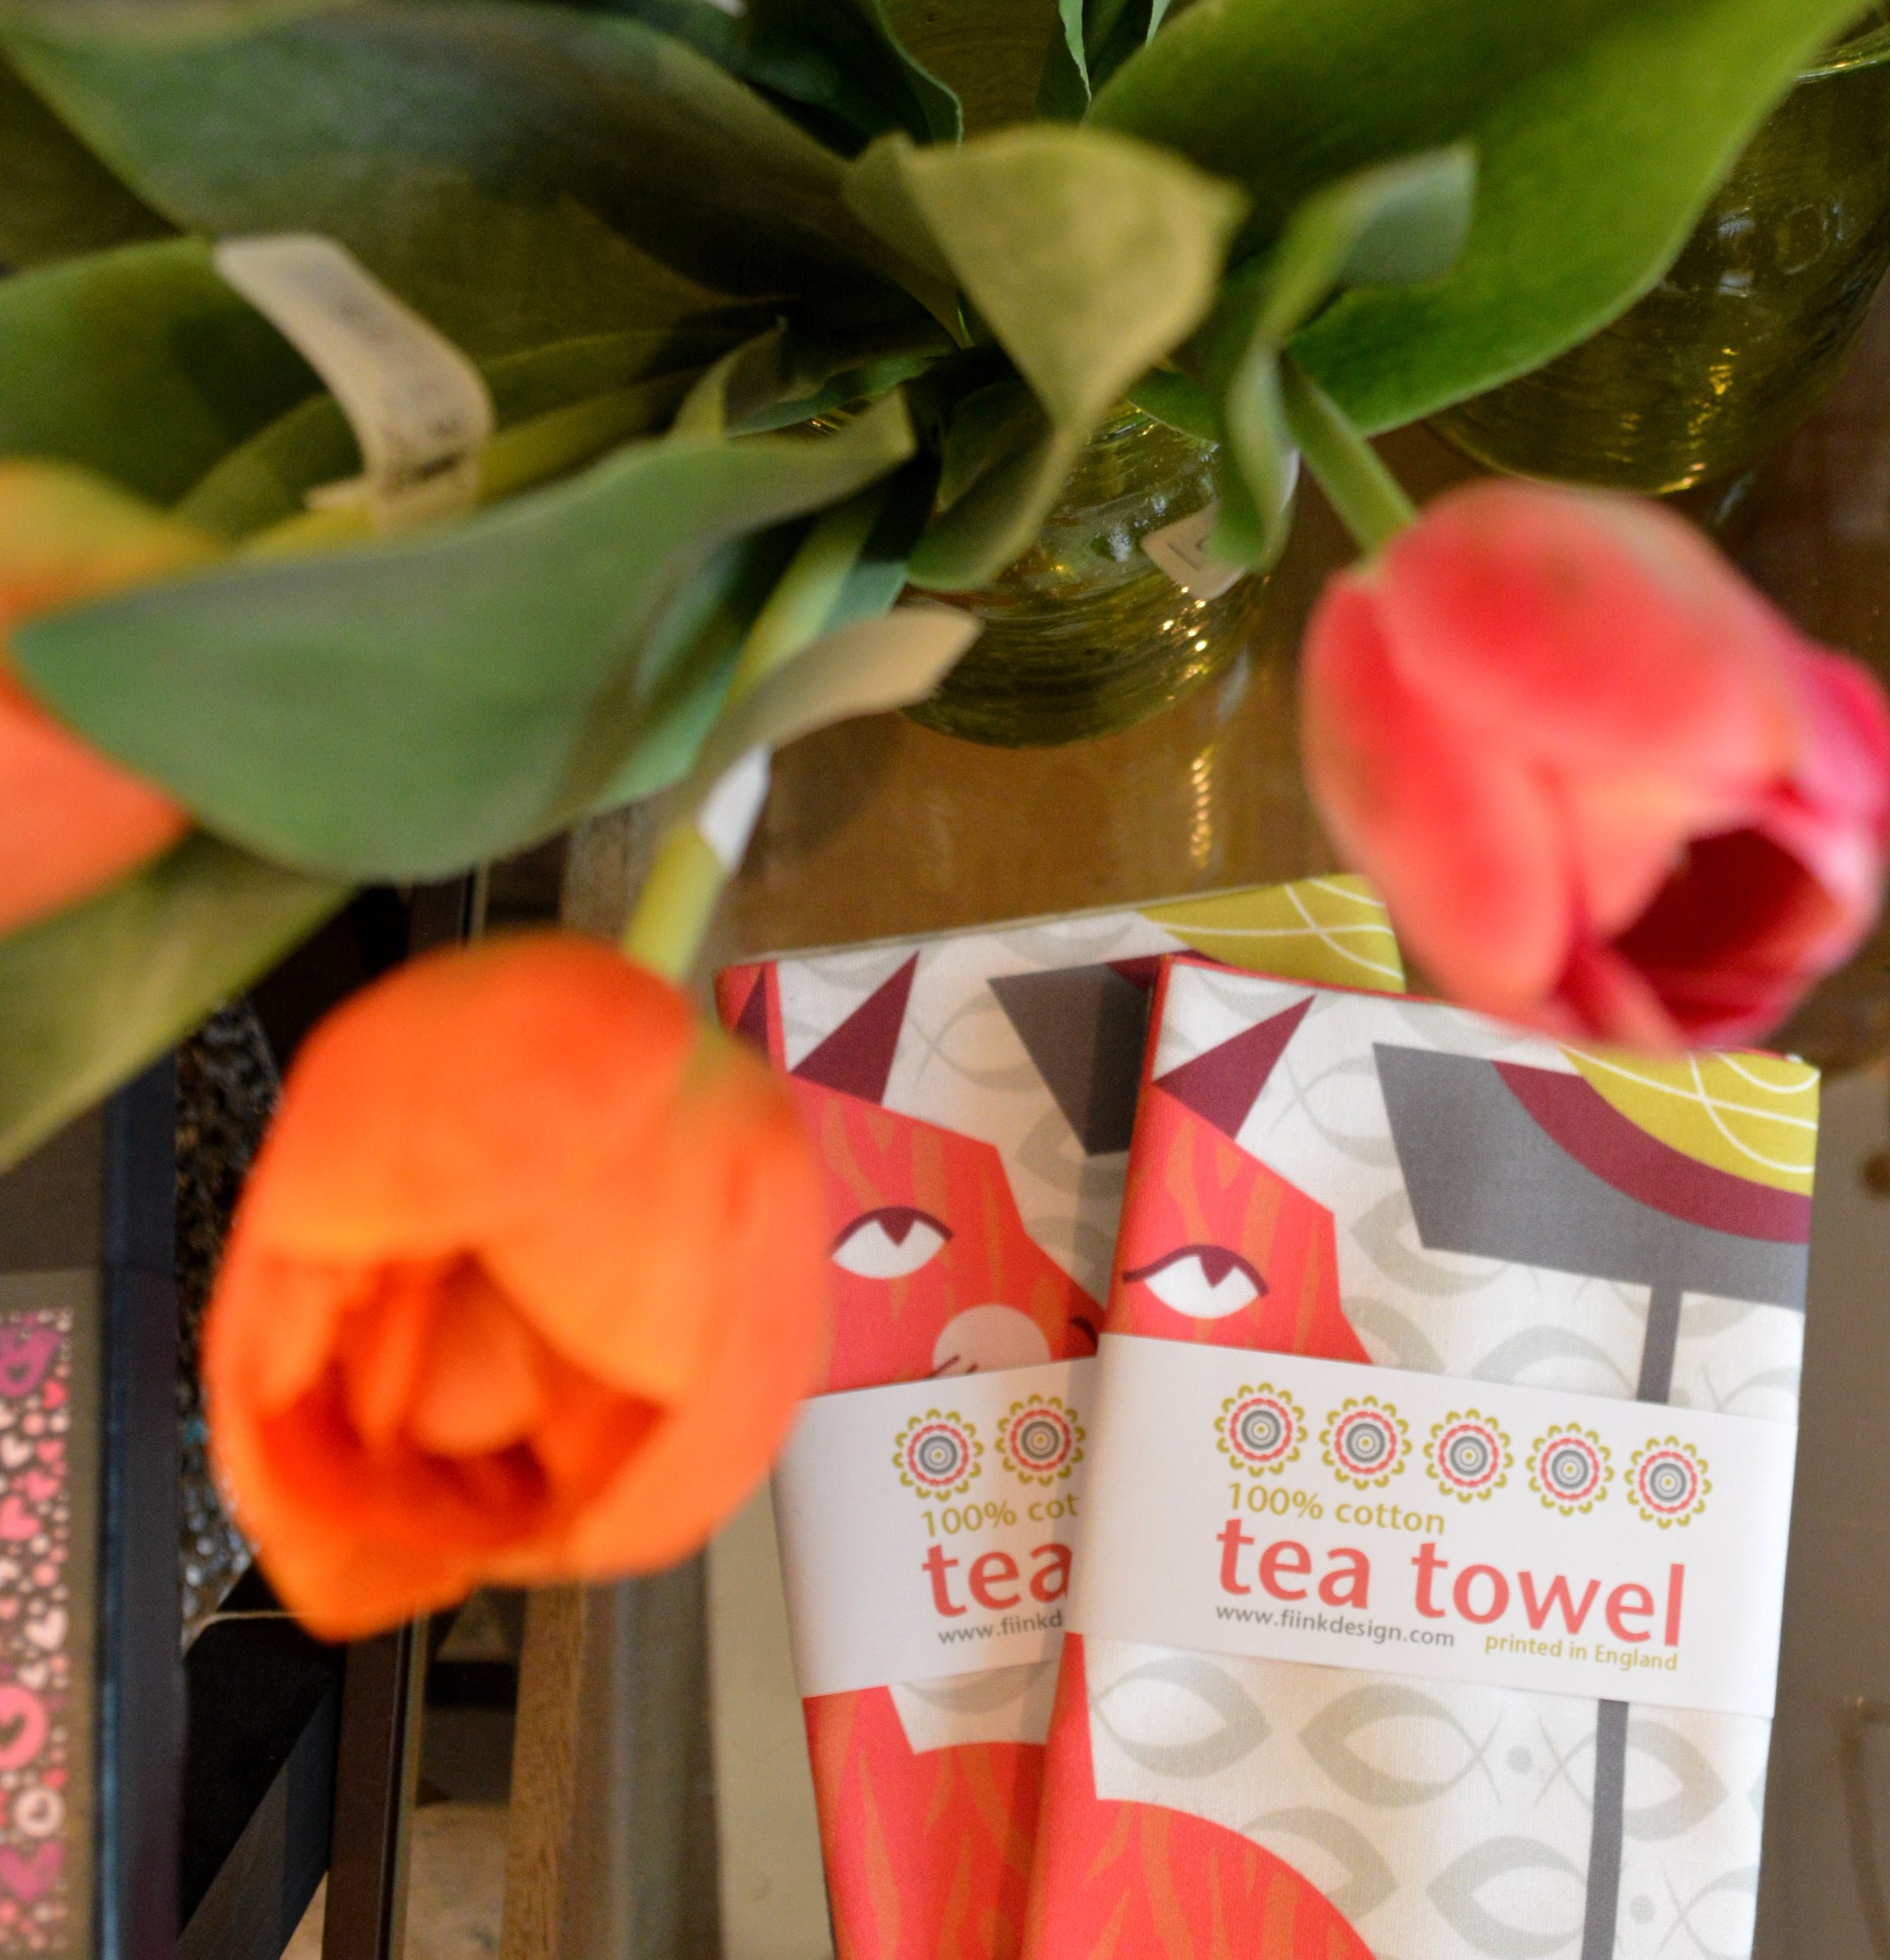 Fiink Design Tea Towels £12.00